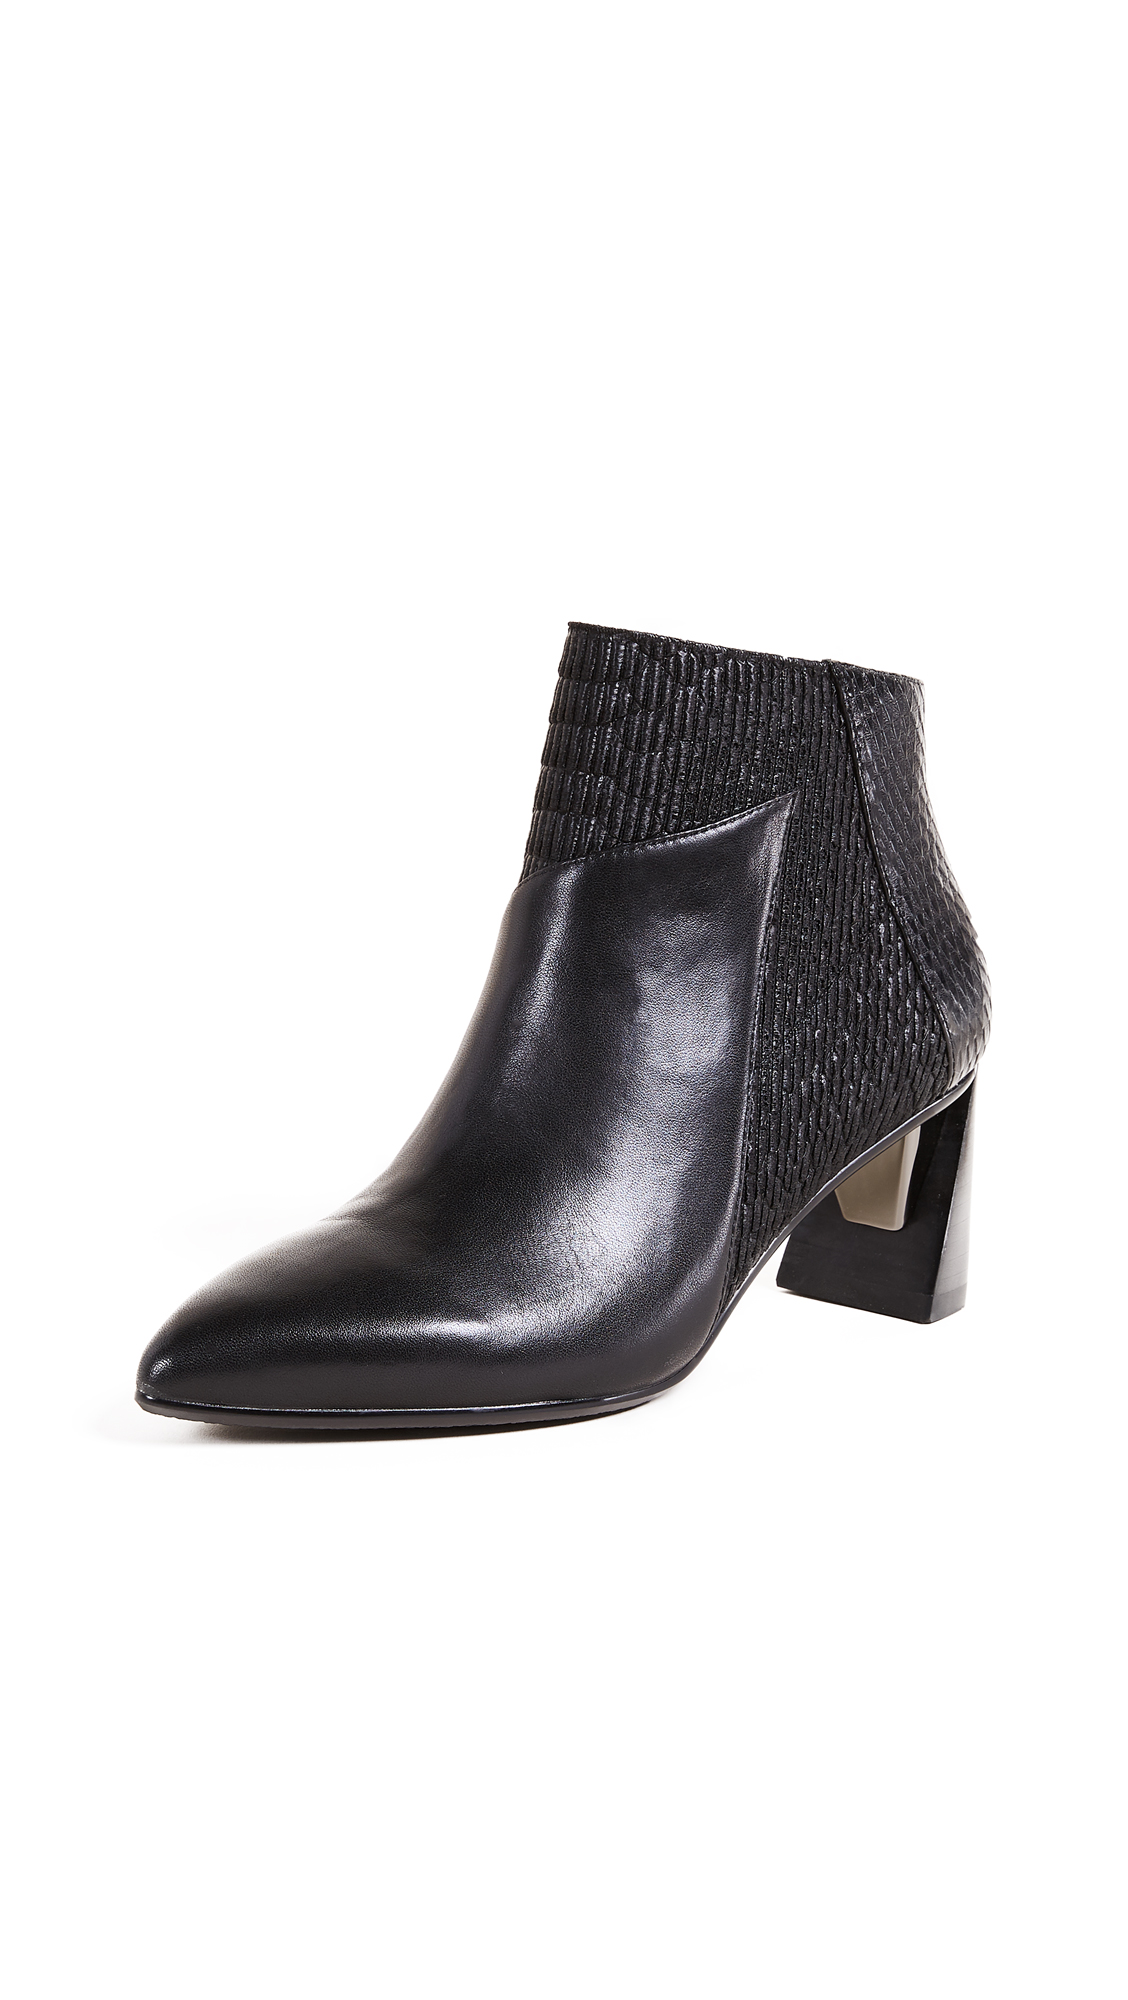 United Nude Zink Mid Ankle Booties - Black/Black